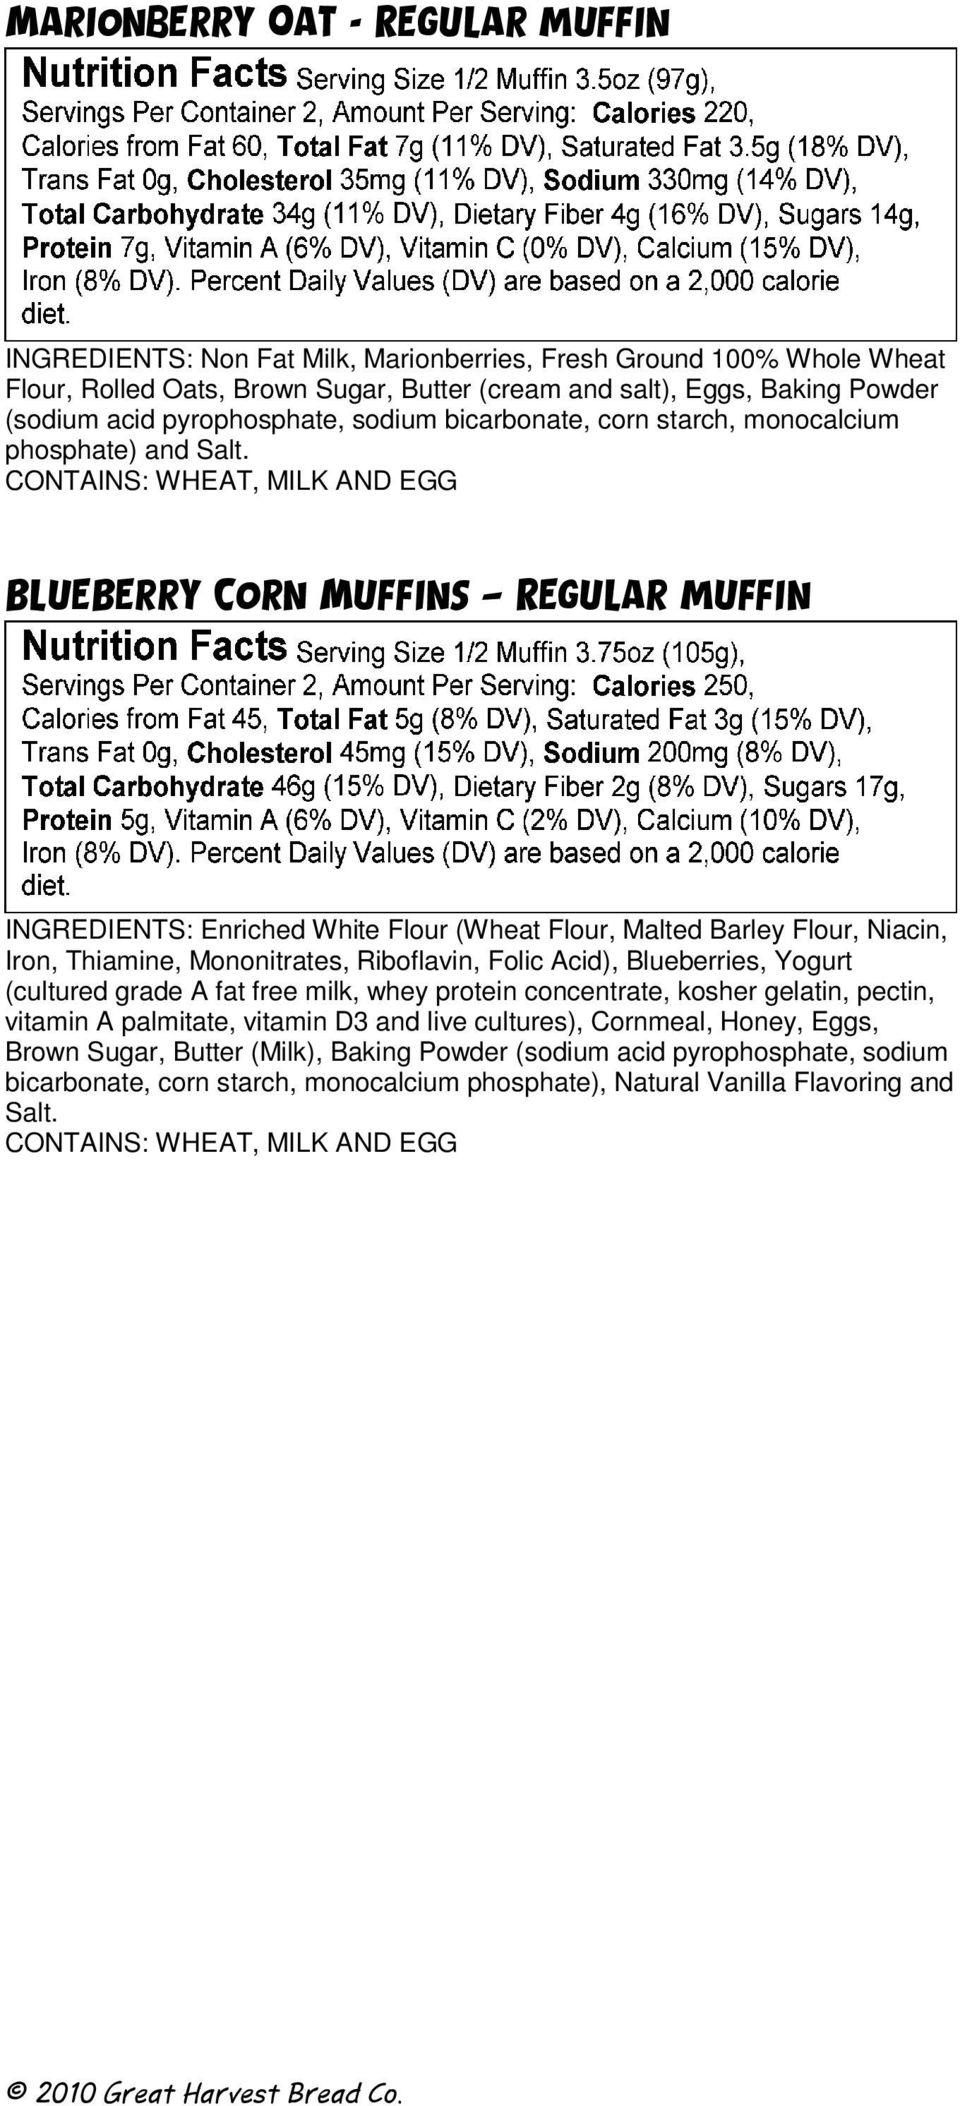 BlueBerry Corn Muffins Regular muffin Iron, Thiamine, Mononitrates, Riboflavin, Folic Acid), Blueberries, Yogurt (cultured grade A fat free milk, whey protein concentrate,